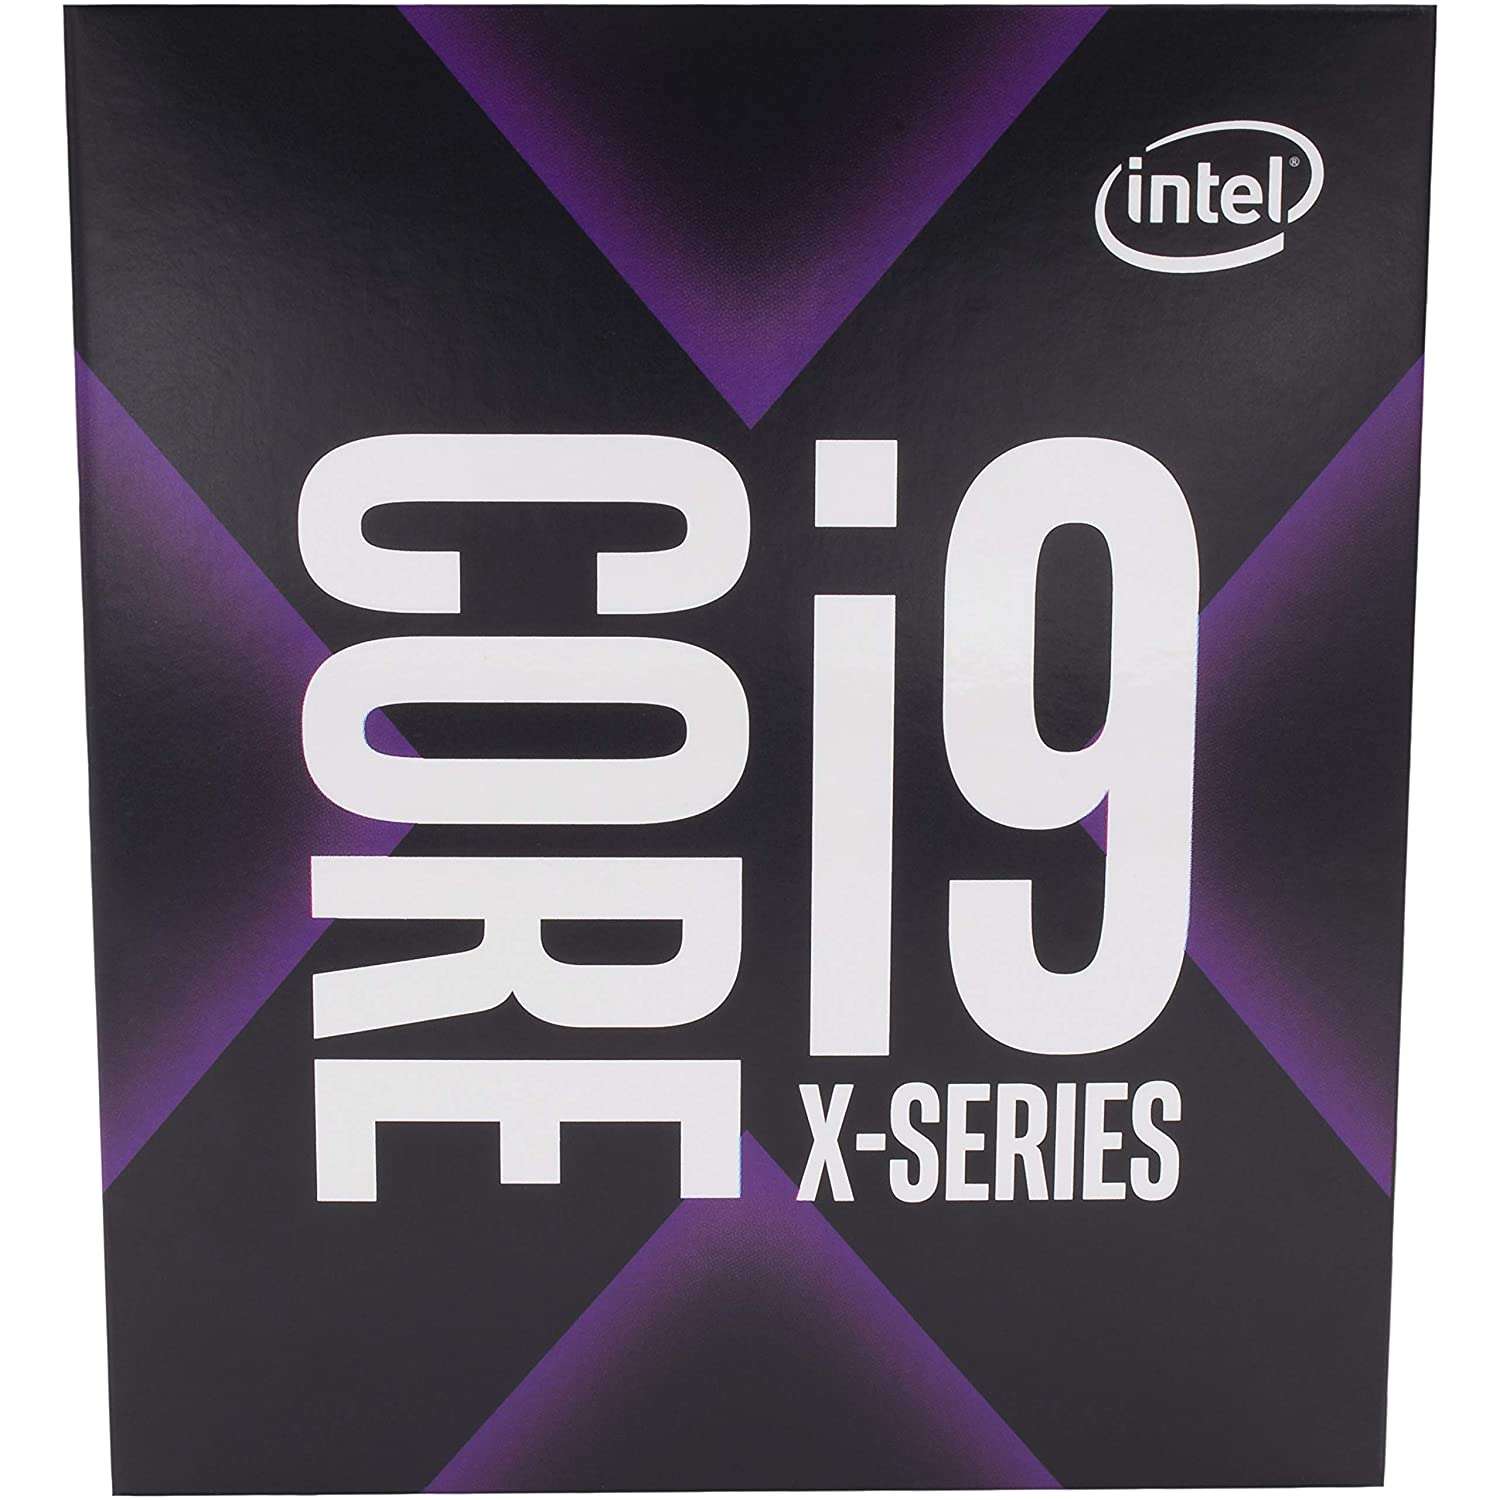 999AC5 Intel Core i9-9900X X-Series Processor 10 Cores up to 4.4GHz Turbo Unlocked LGA2066 X299 Series 165W Processors